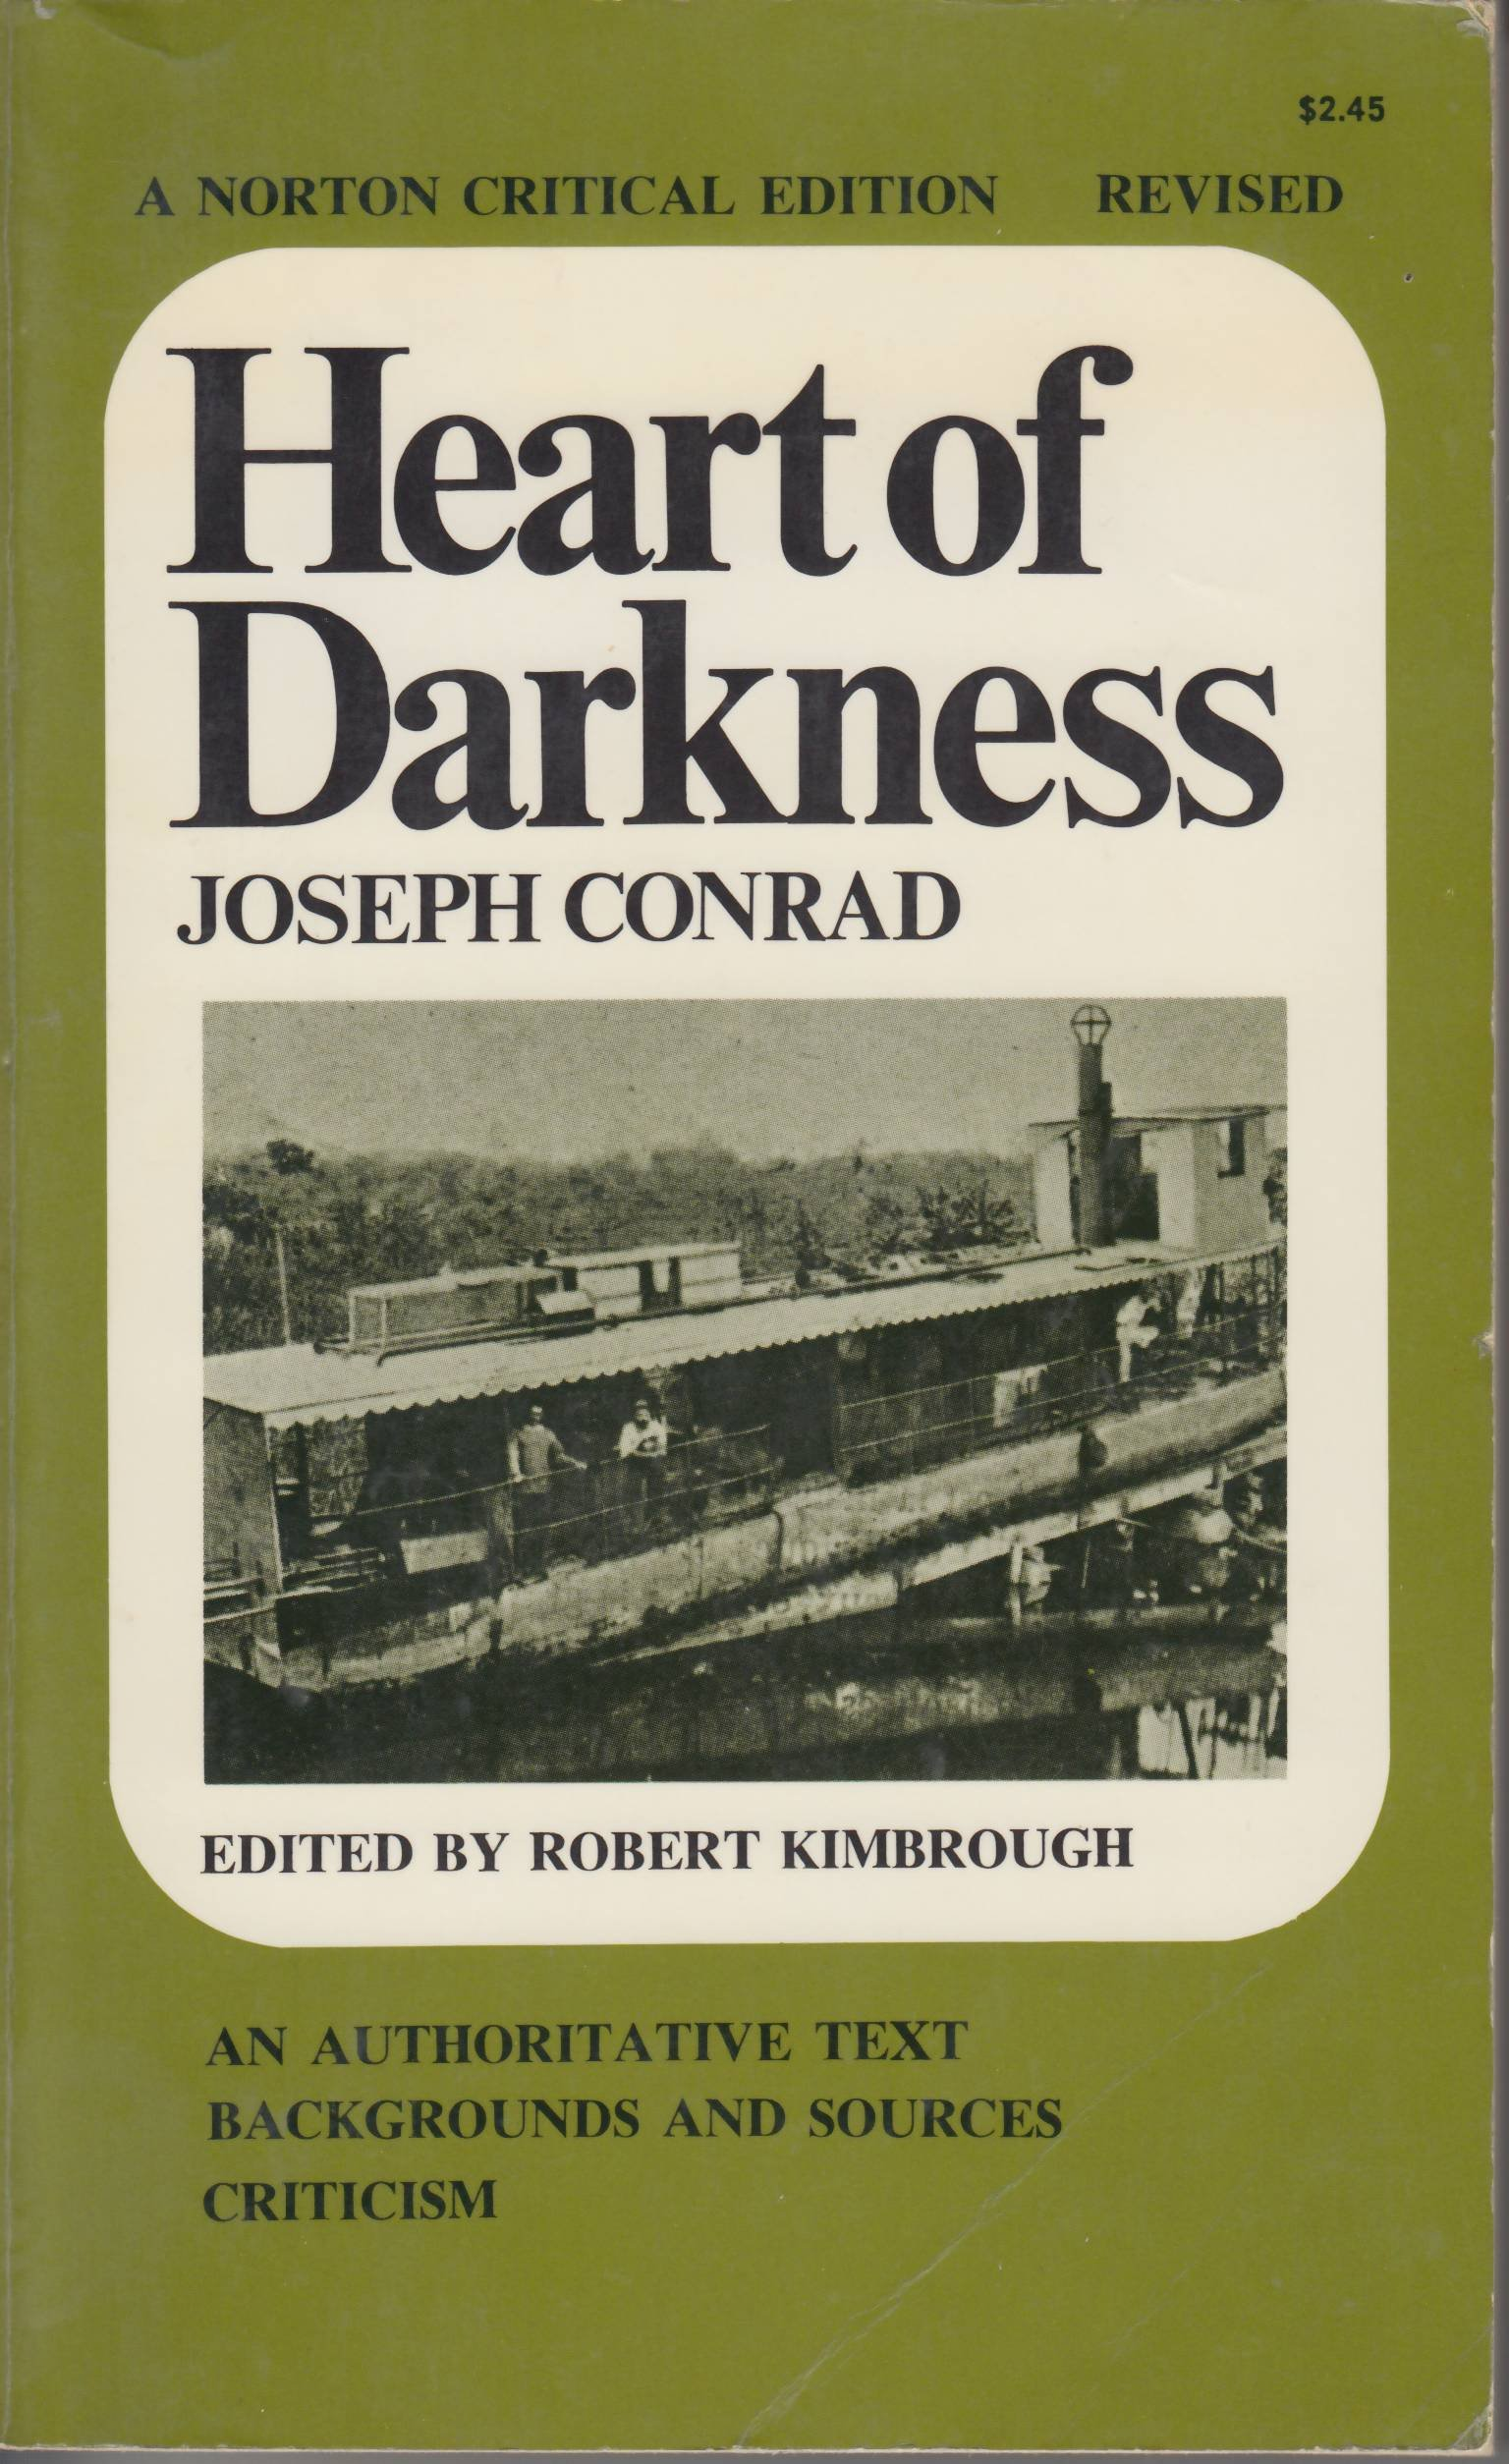 heart of darkness an authoritative text backgrounds and sources heart of darkness an authoritative text backgrounds and sources essays in criticism norton critical editions joseph conrad 9780393096040